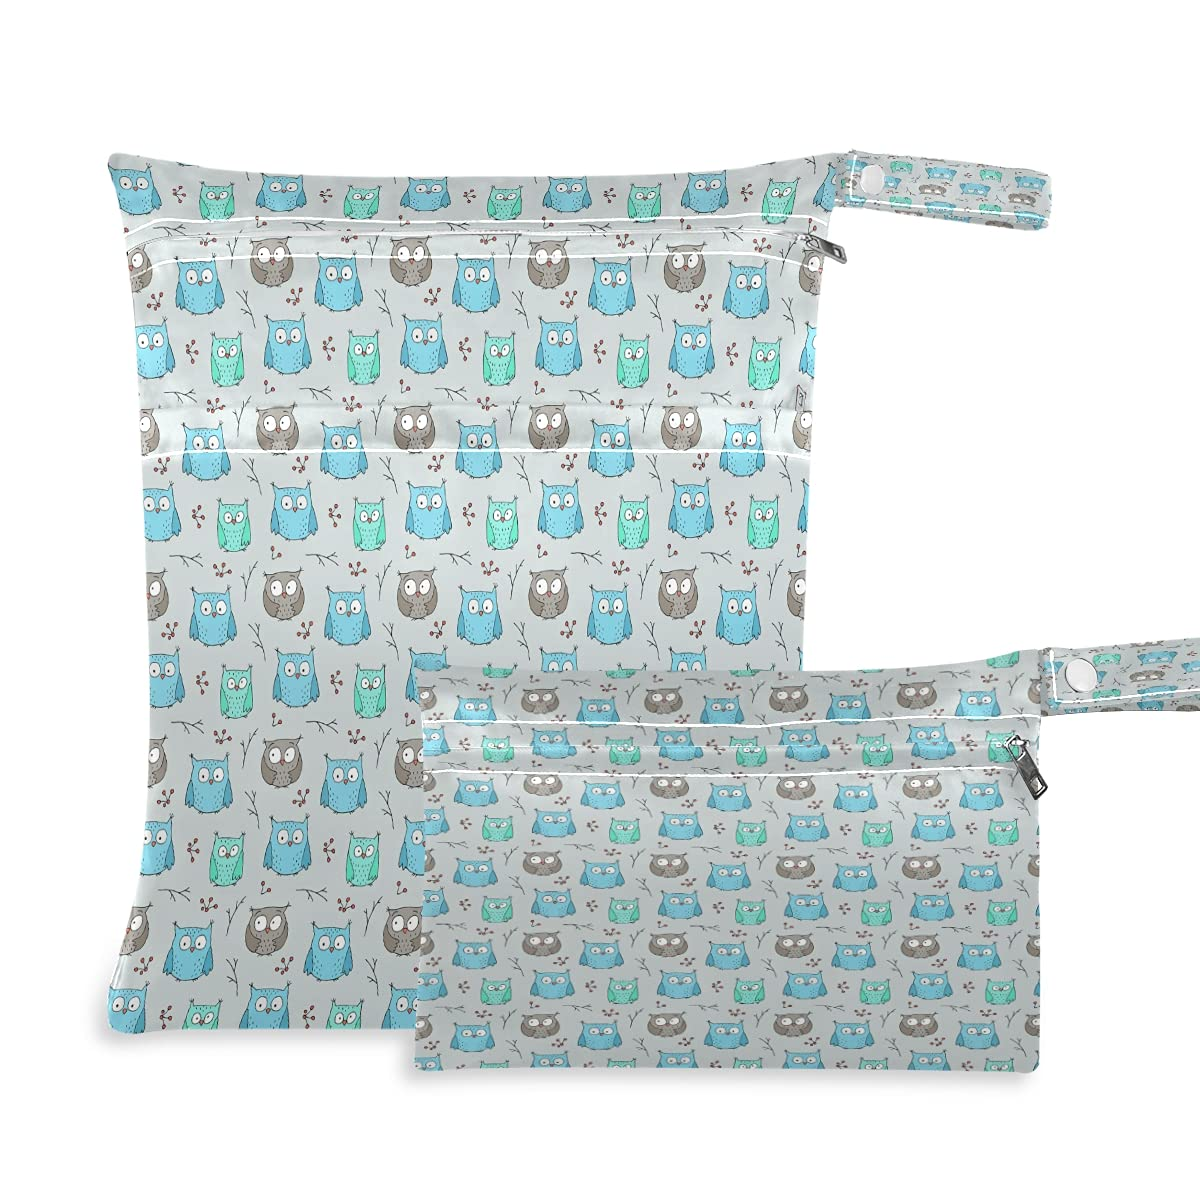 Wet and Dry Classic Bag for Baby Waterproof Reusa Cloth Diaper Sets 2pcs Discount is also underway